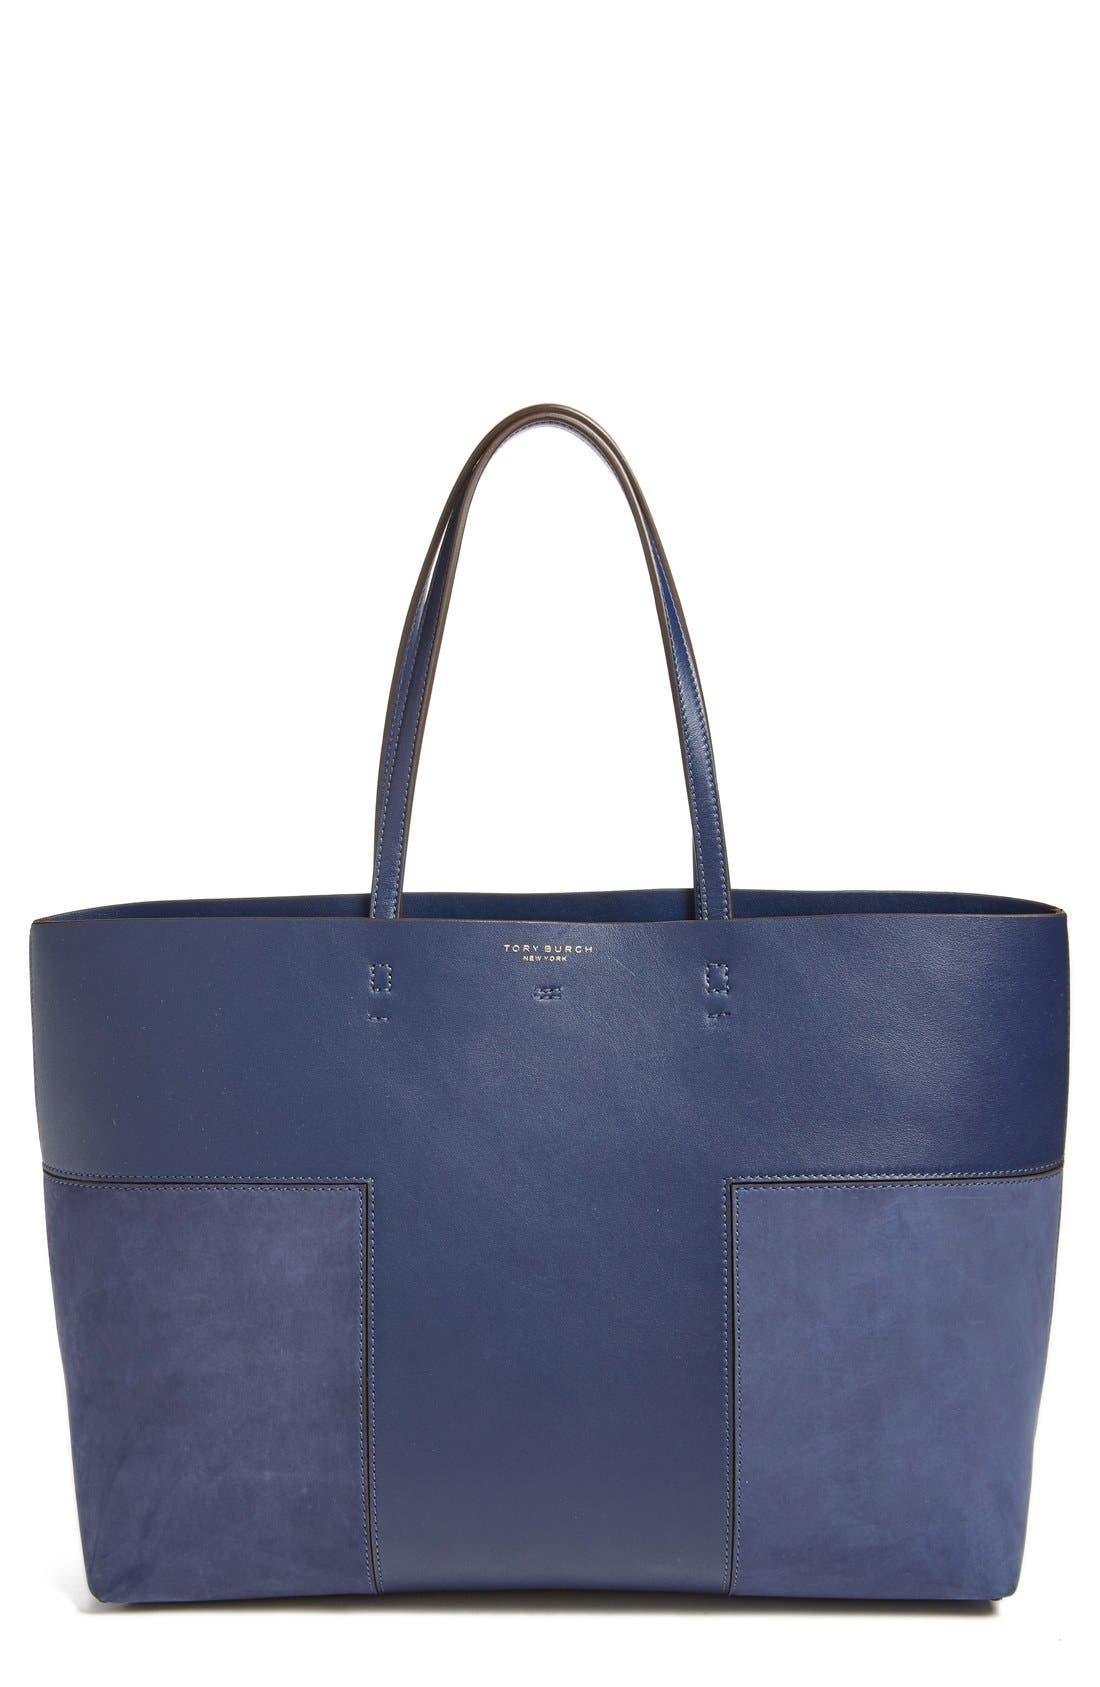 Main Image - Tory Burch 'Block T' Leather Tote